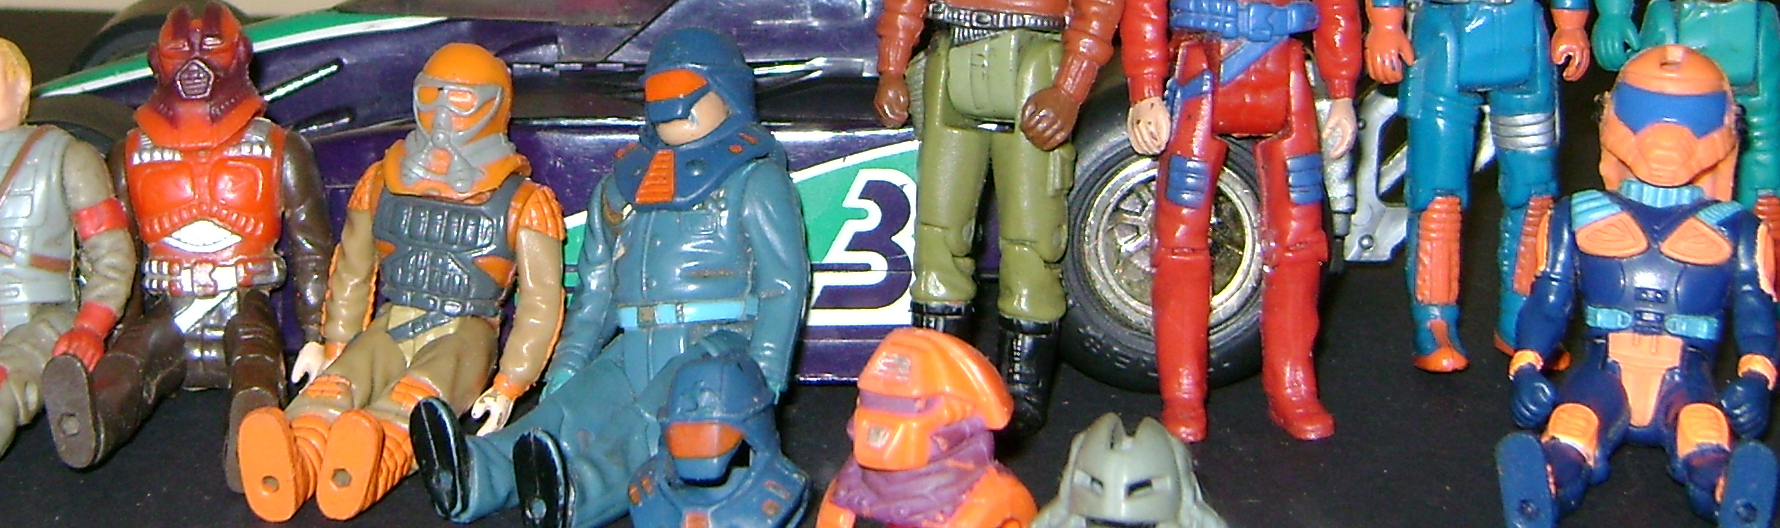 Vintage Toy Of The Month: M.A.S.K. (Paladin's Remix)!